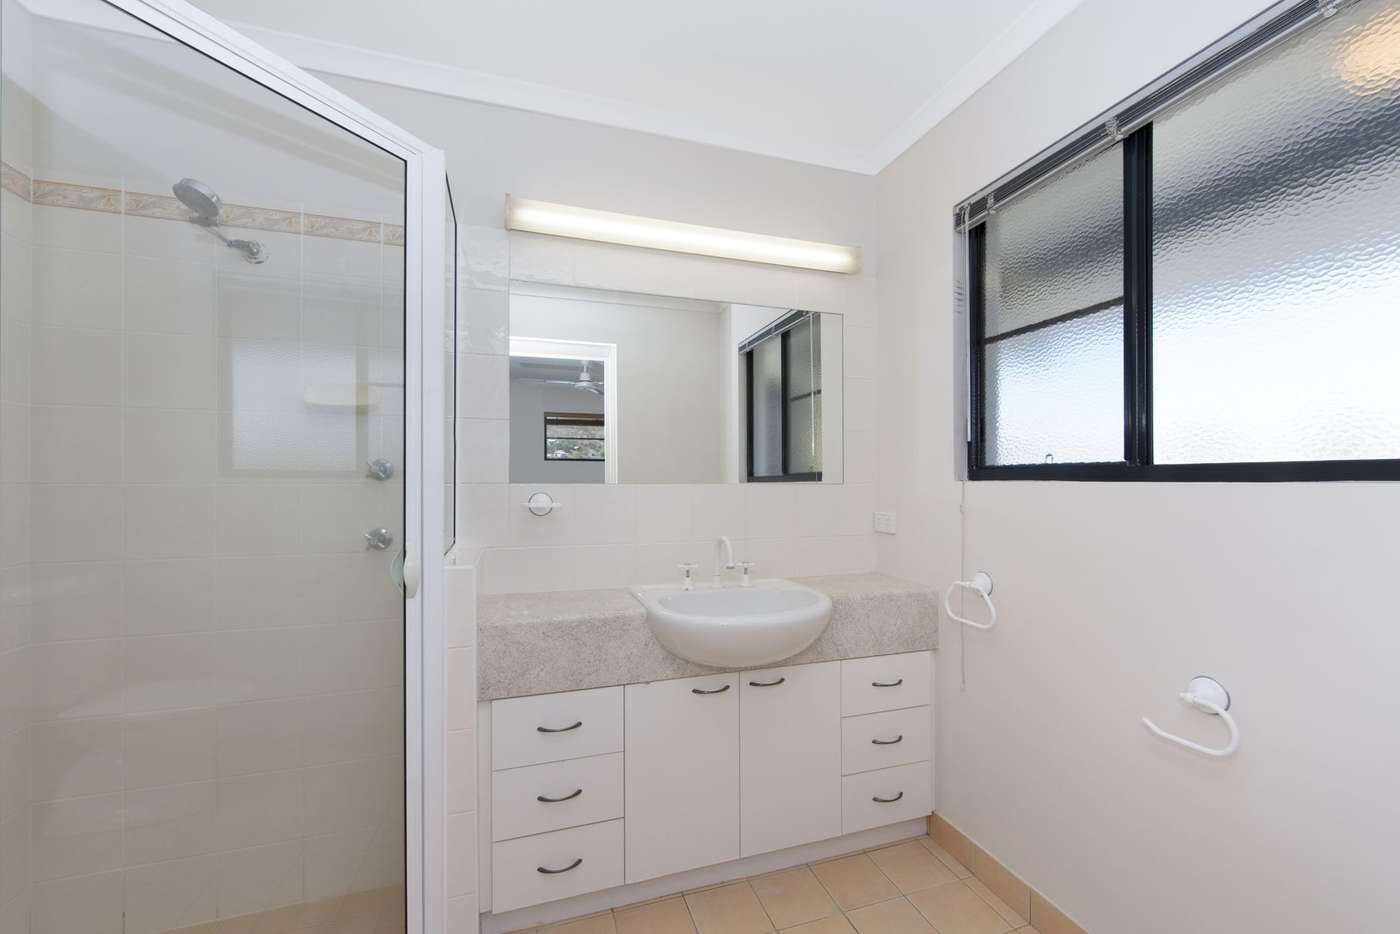 Fifth view of Homely apartment listing, 5/106 Eyre Street, North Ward QLD 4810